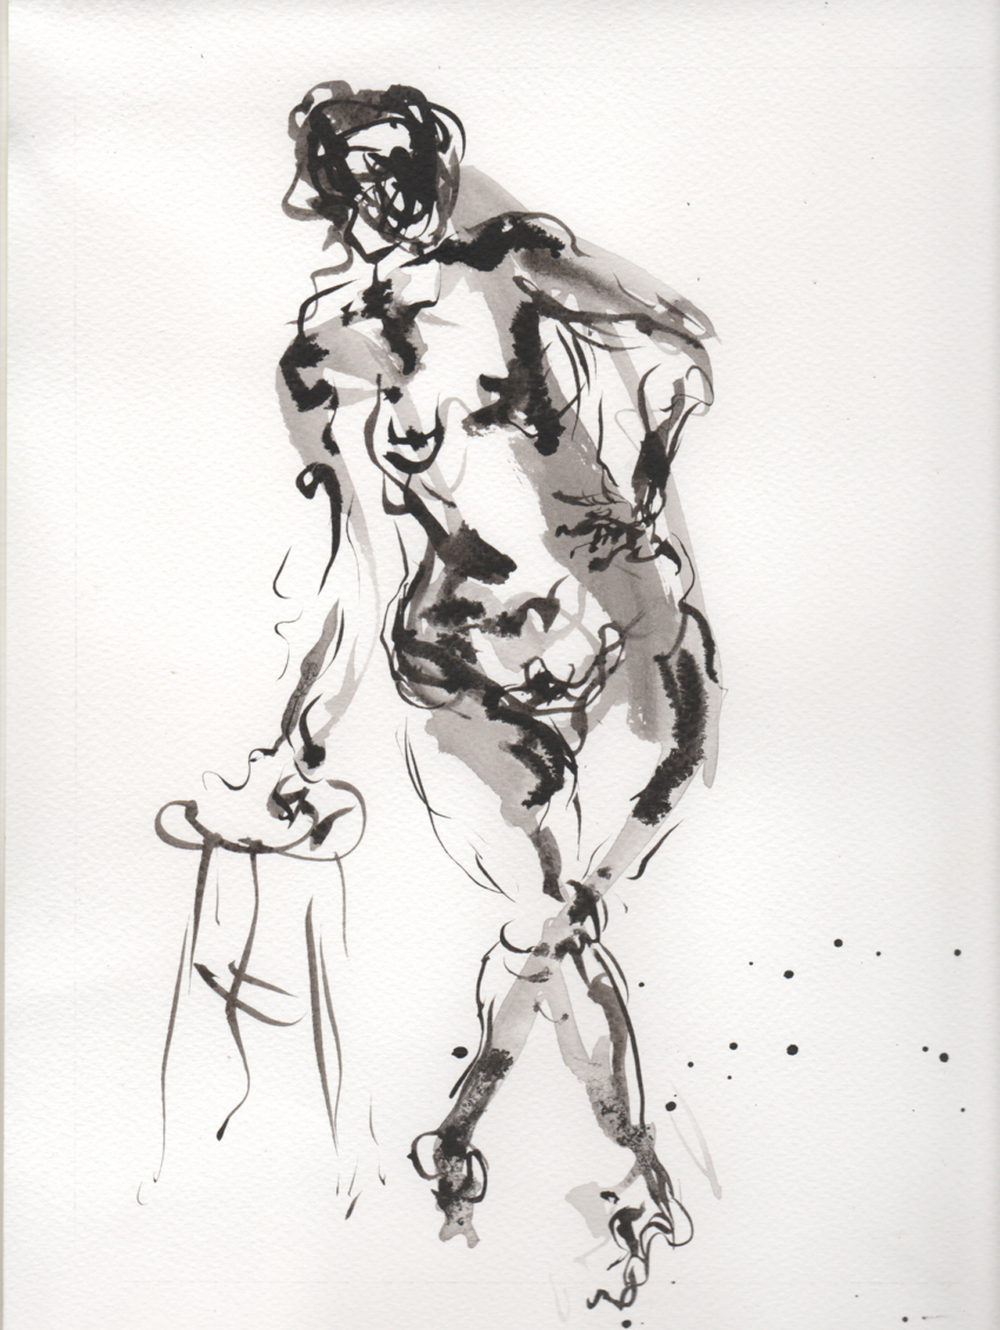 2014-0709-Ink Brush on watercolor Paper 8 x 11 Standing Nude Leaning on Stool 300dpi.jpg